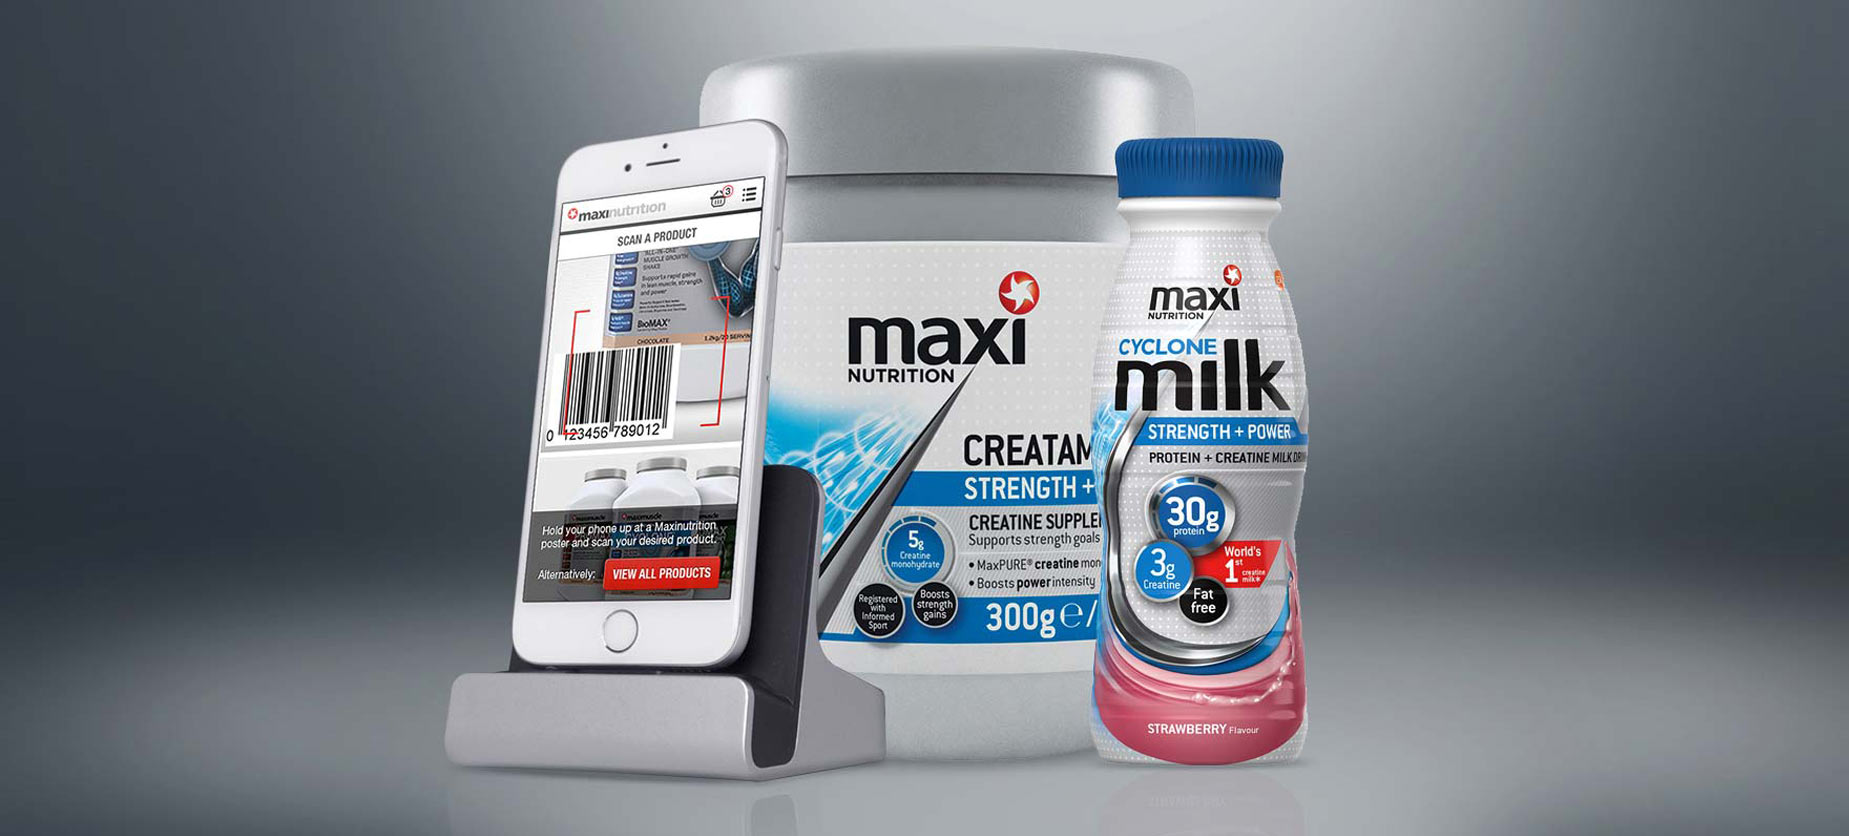 MaxiNutrition website on an iPhone next to MaxiNutrition products